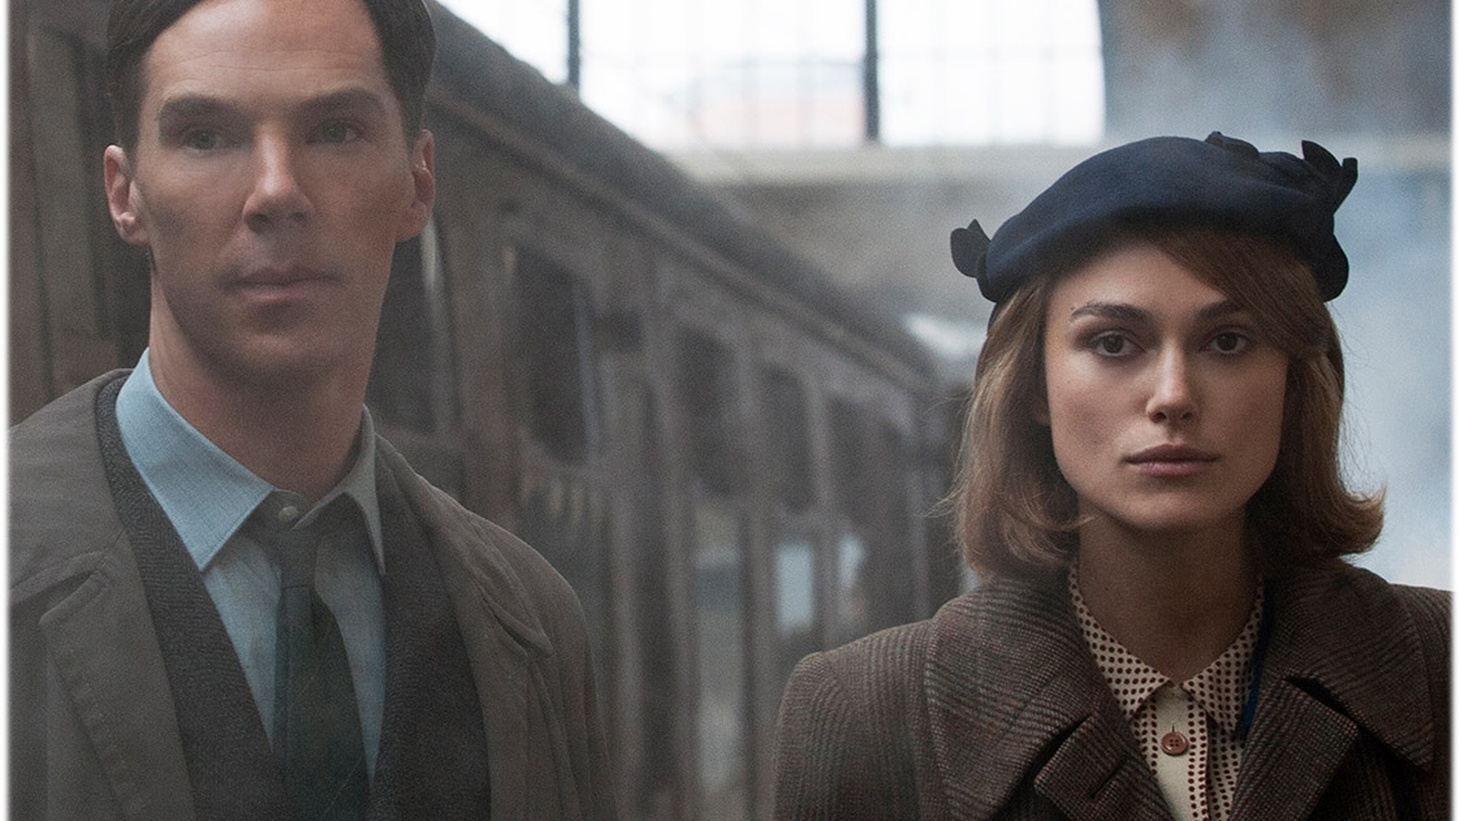 The Imitation Game, with Benedict Cumberbatch in full cry, summons up a life that changed modern history.